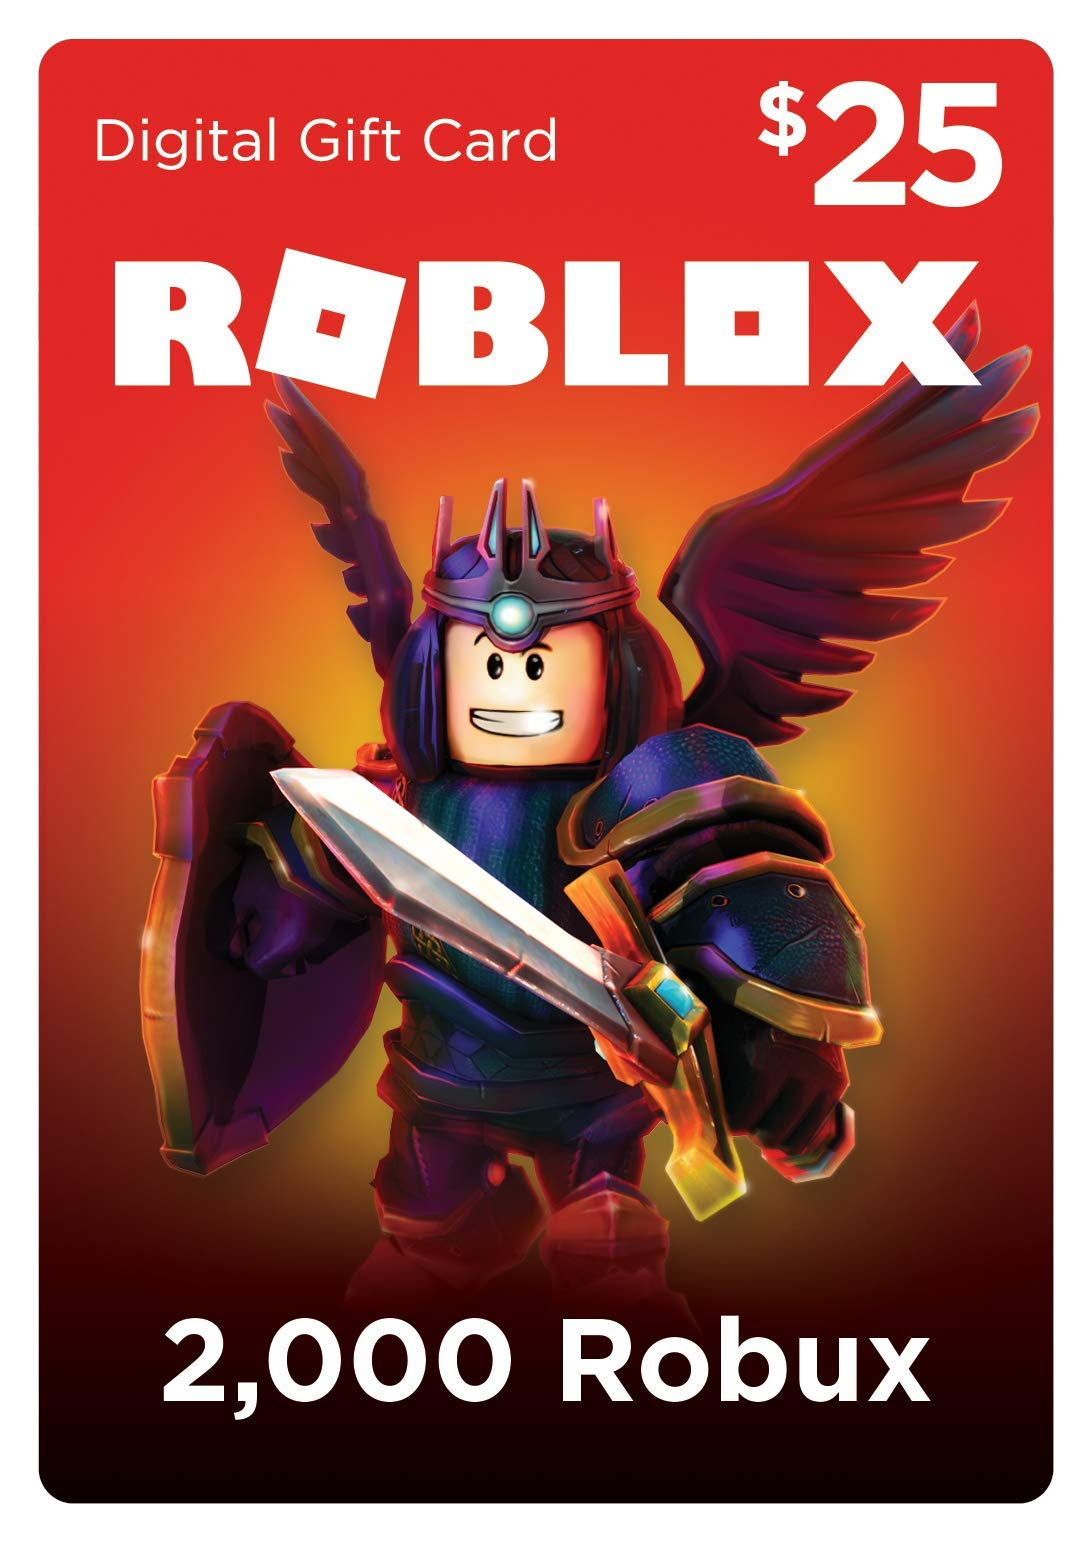 2,000 Robux for Roblox [Online Game Code] by Roblox